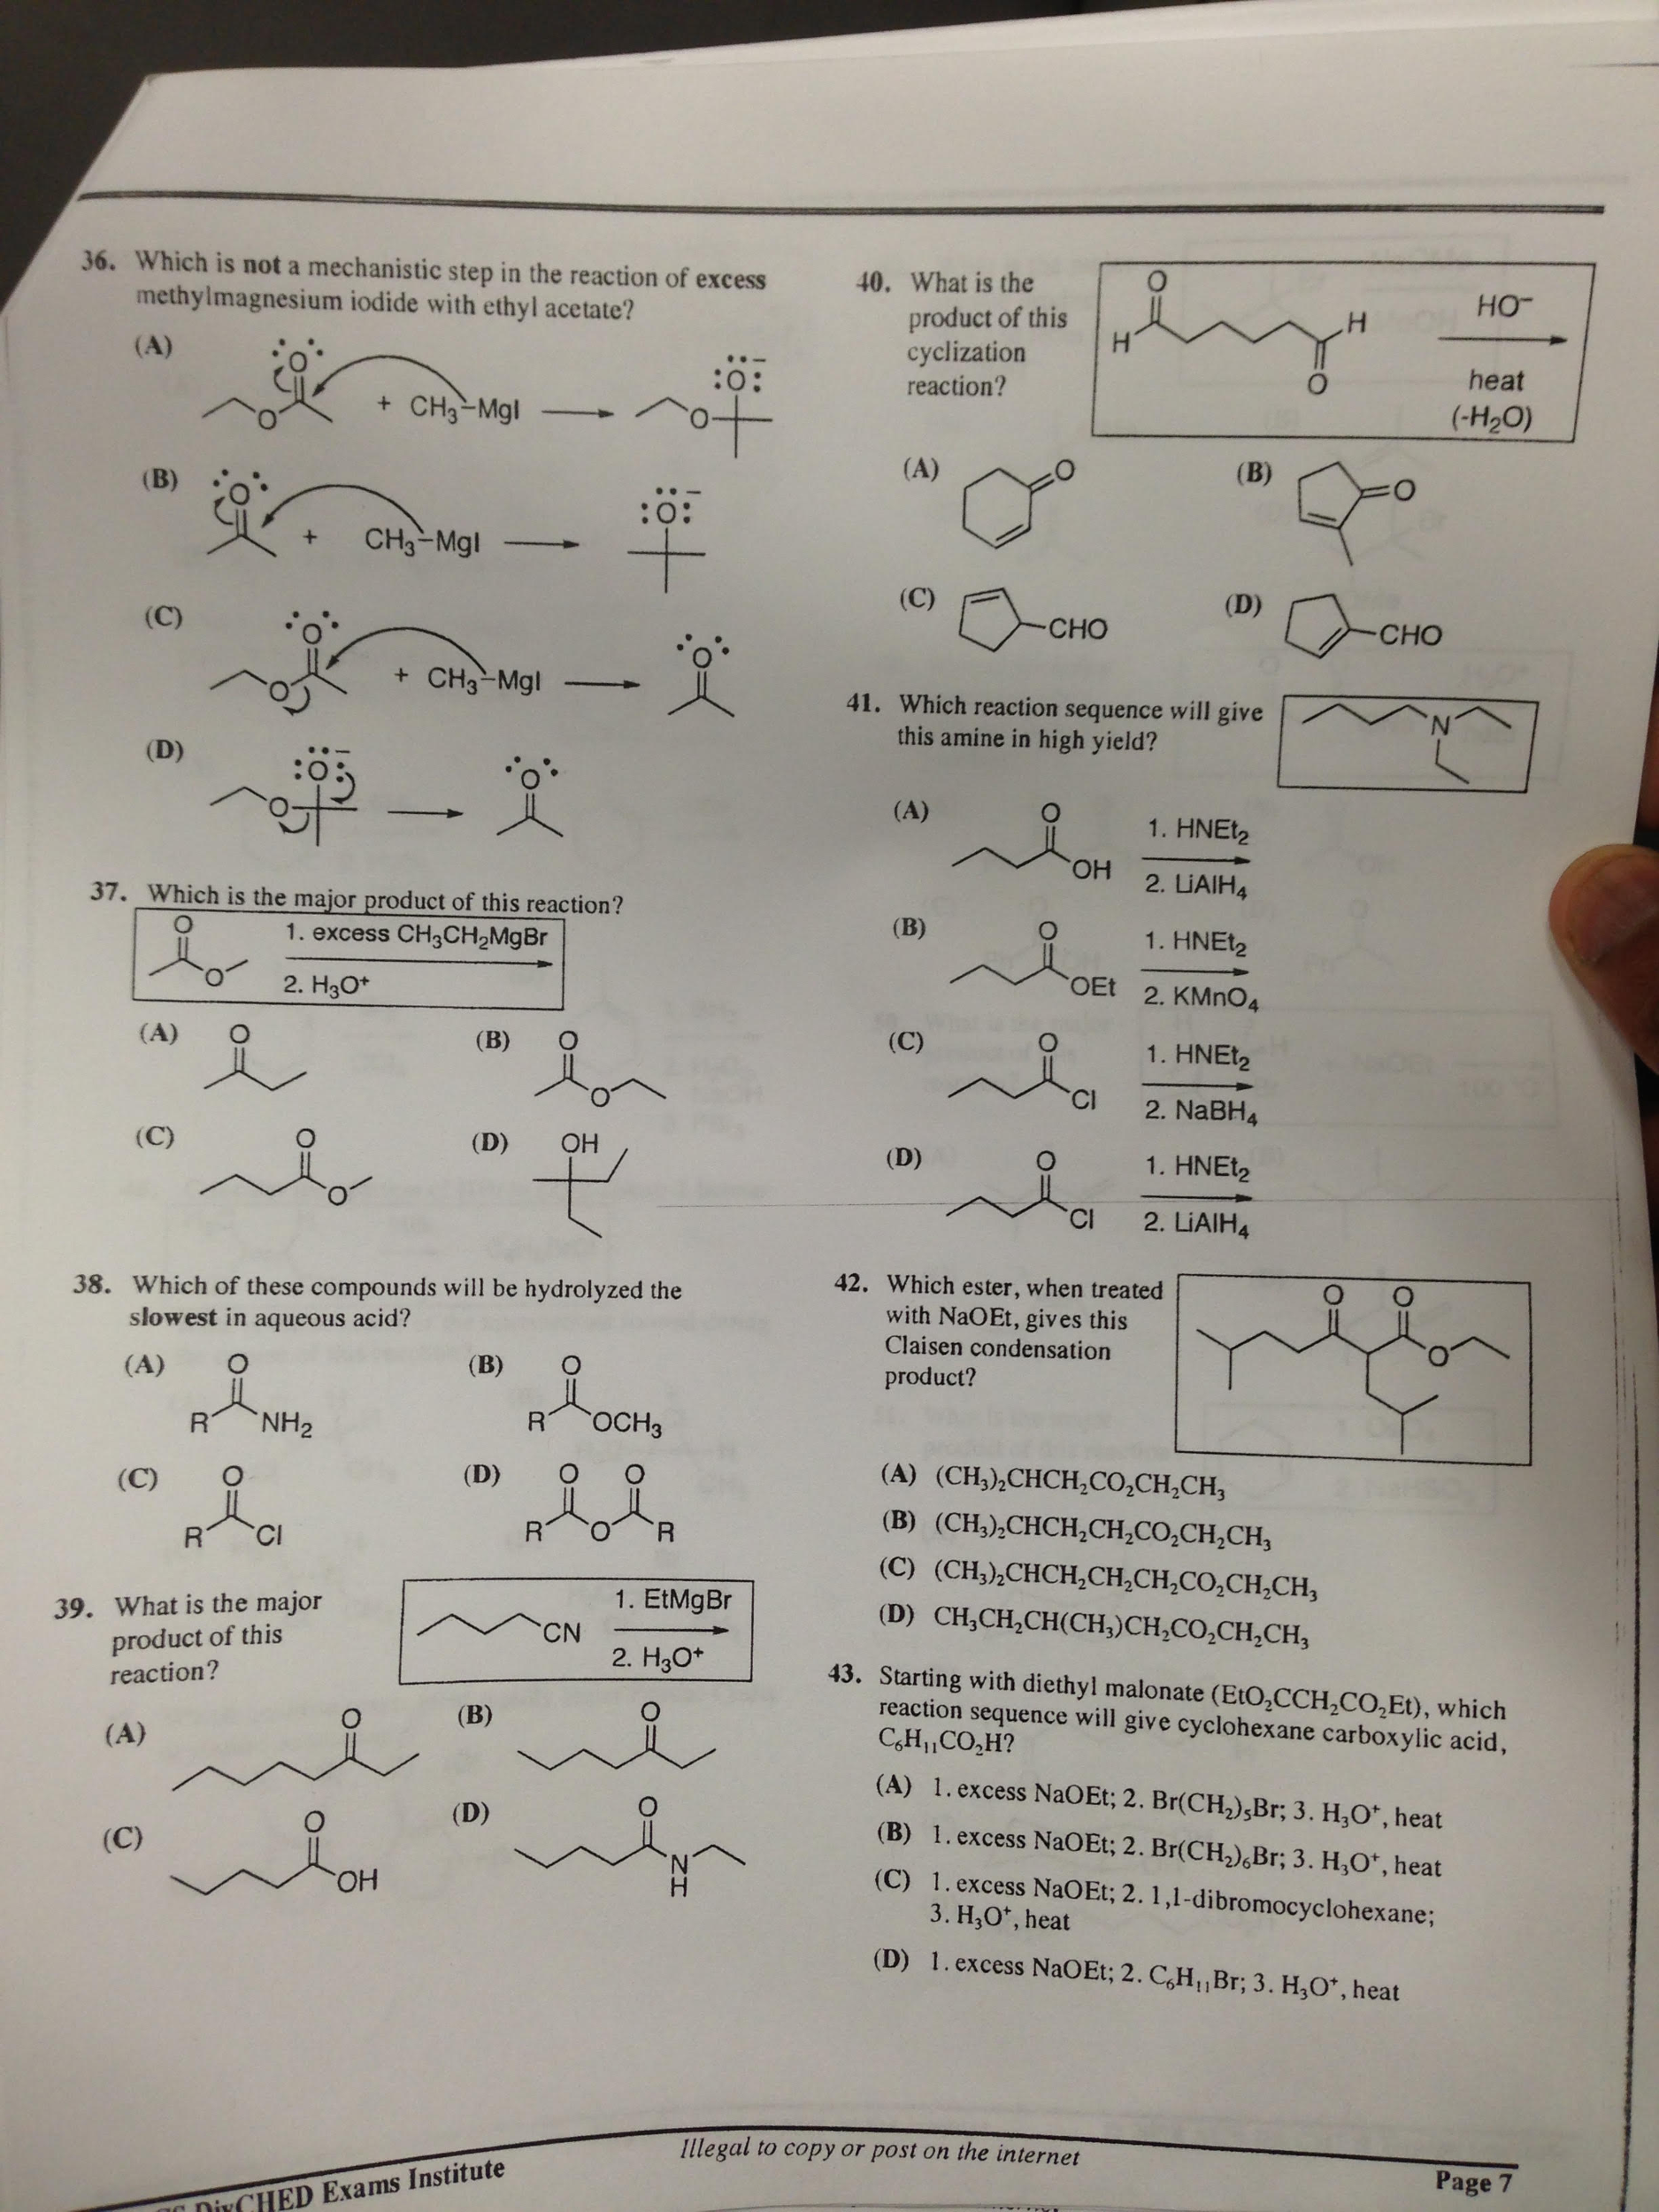 Solved: Which Is Not A Mechanistic Step In The Reaction Of